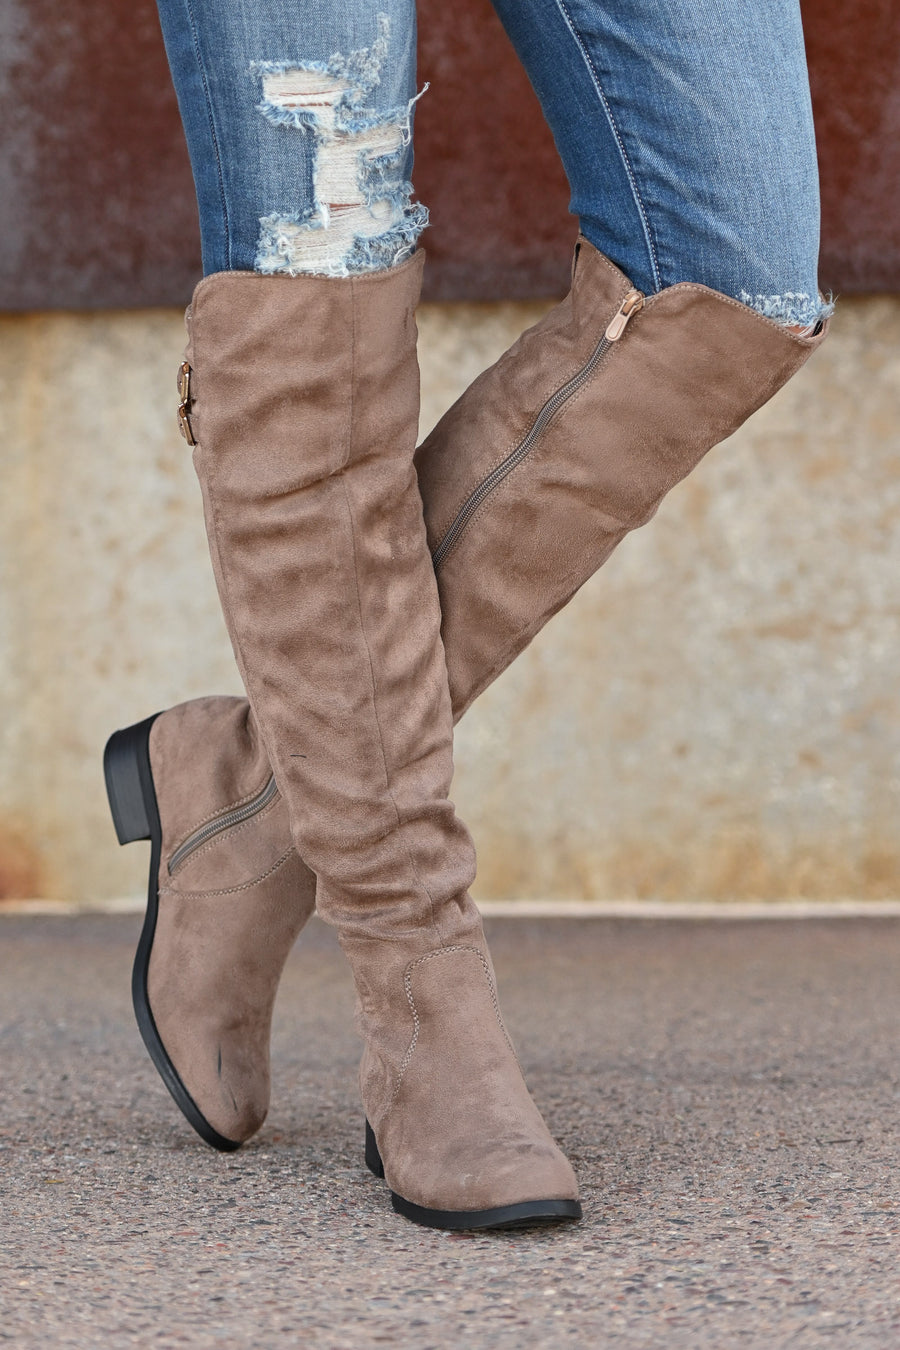 Kenzie Knee-High Boots - Taupe women's knee-high boots, Closet Candy Boutique 1